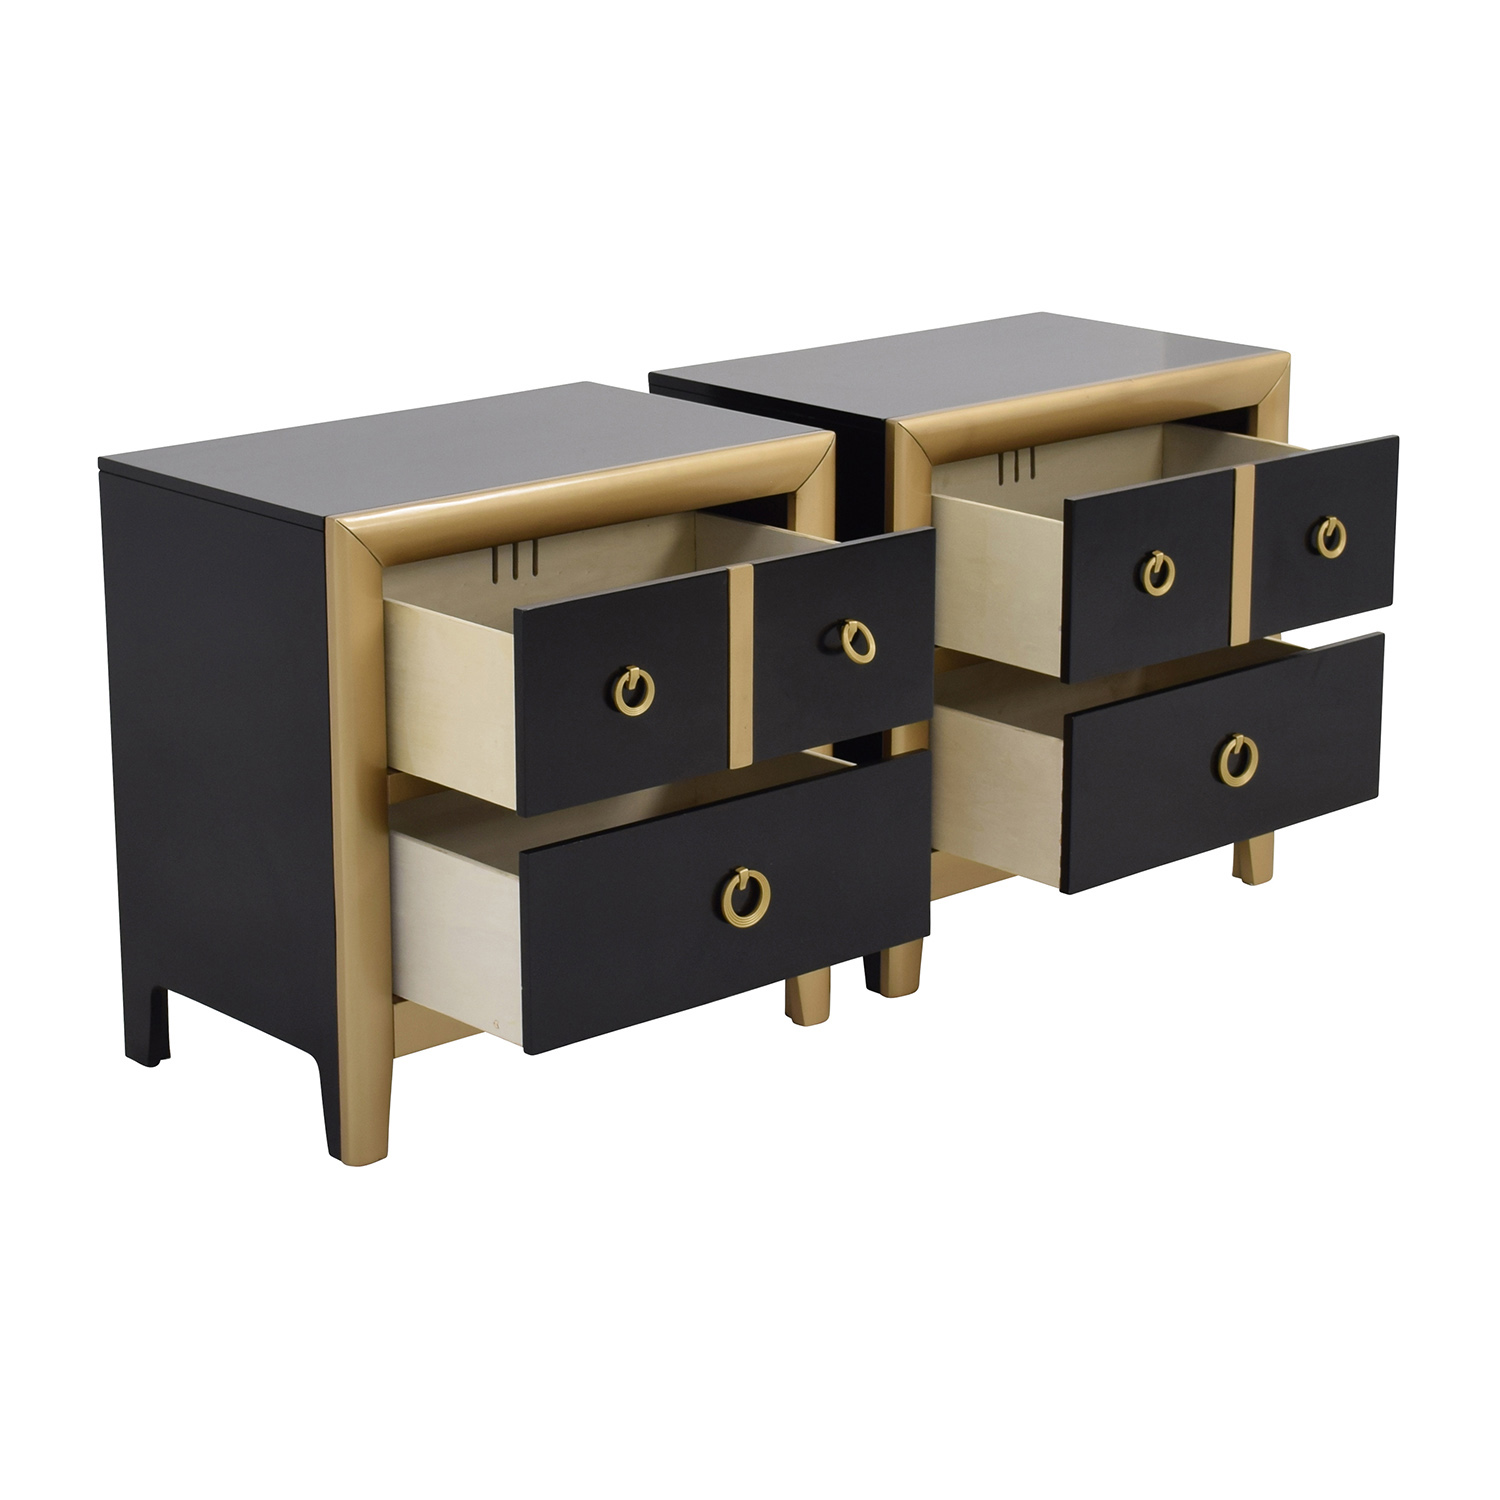 Coaster Furniture Coaster Furniture Black and Gold Two-Drawer Nightstands used